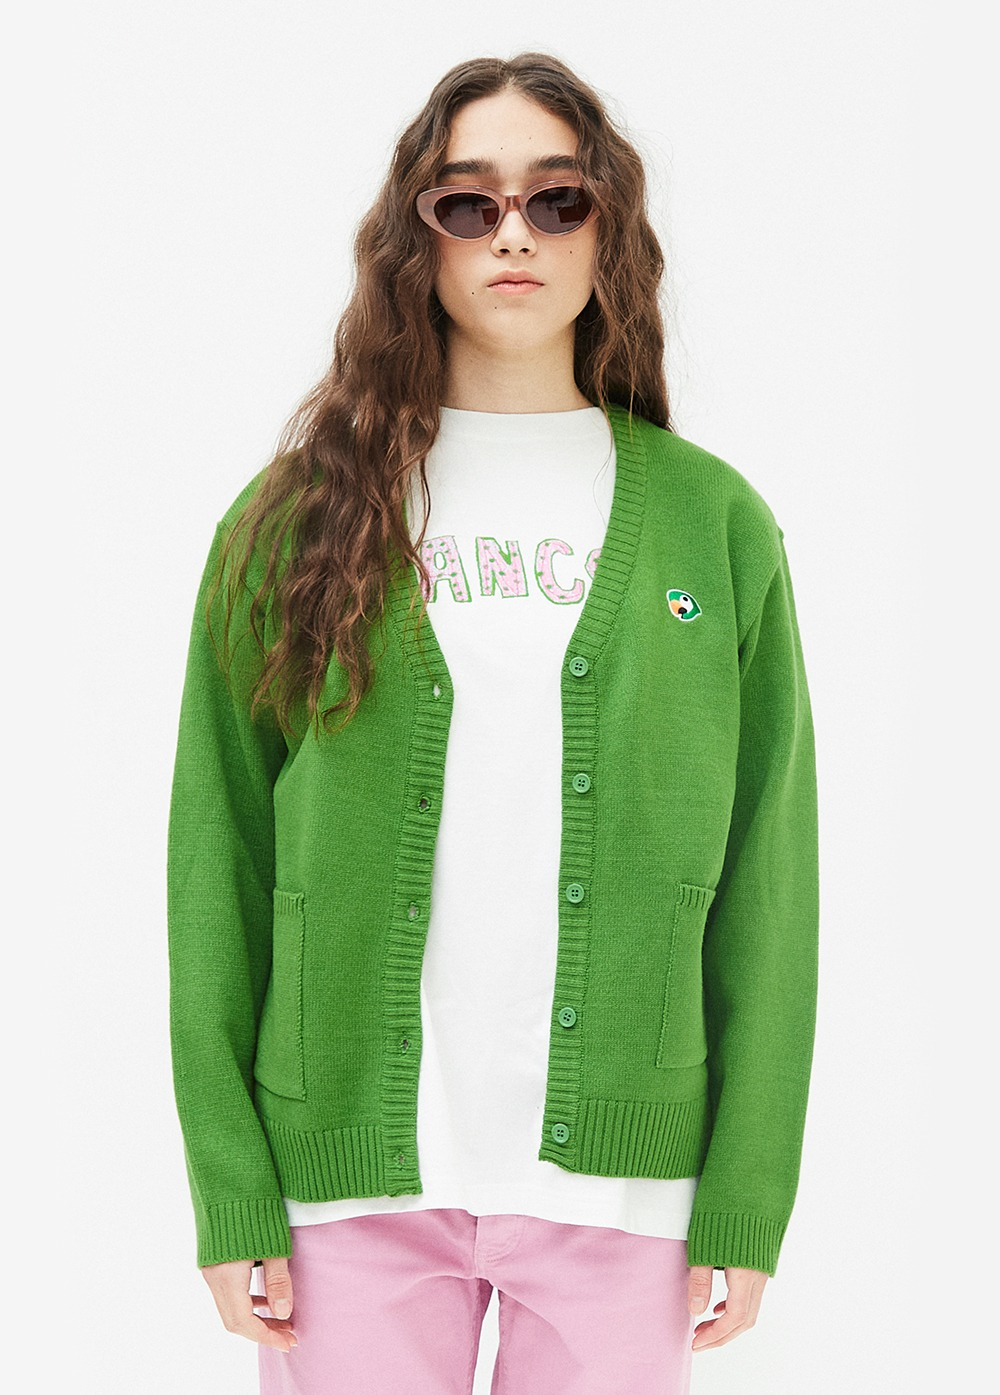 KANCO LOGO CARDIGAN green